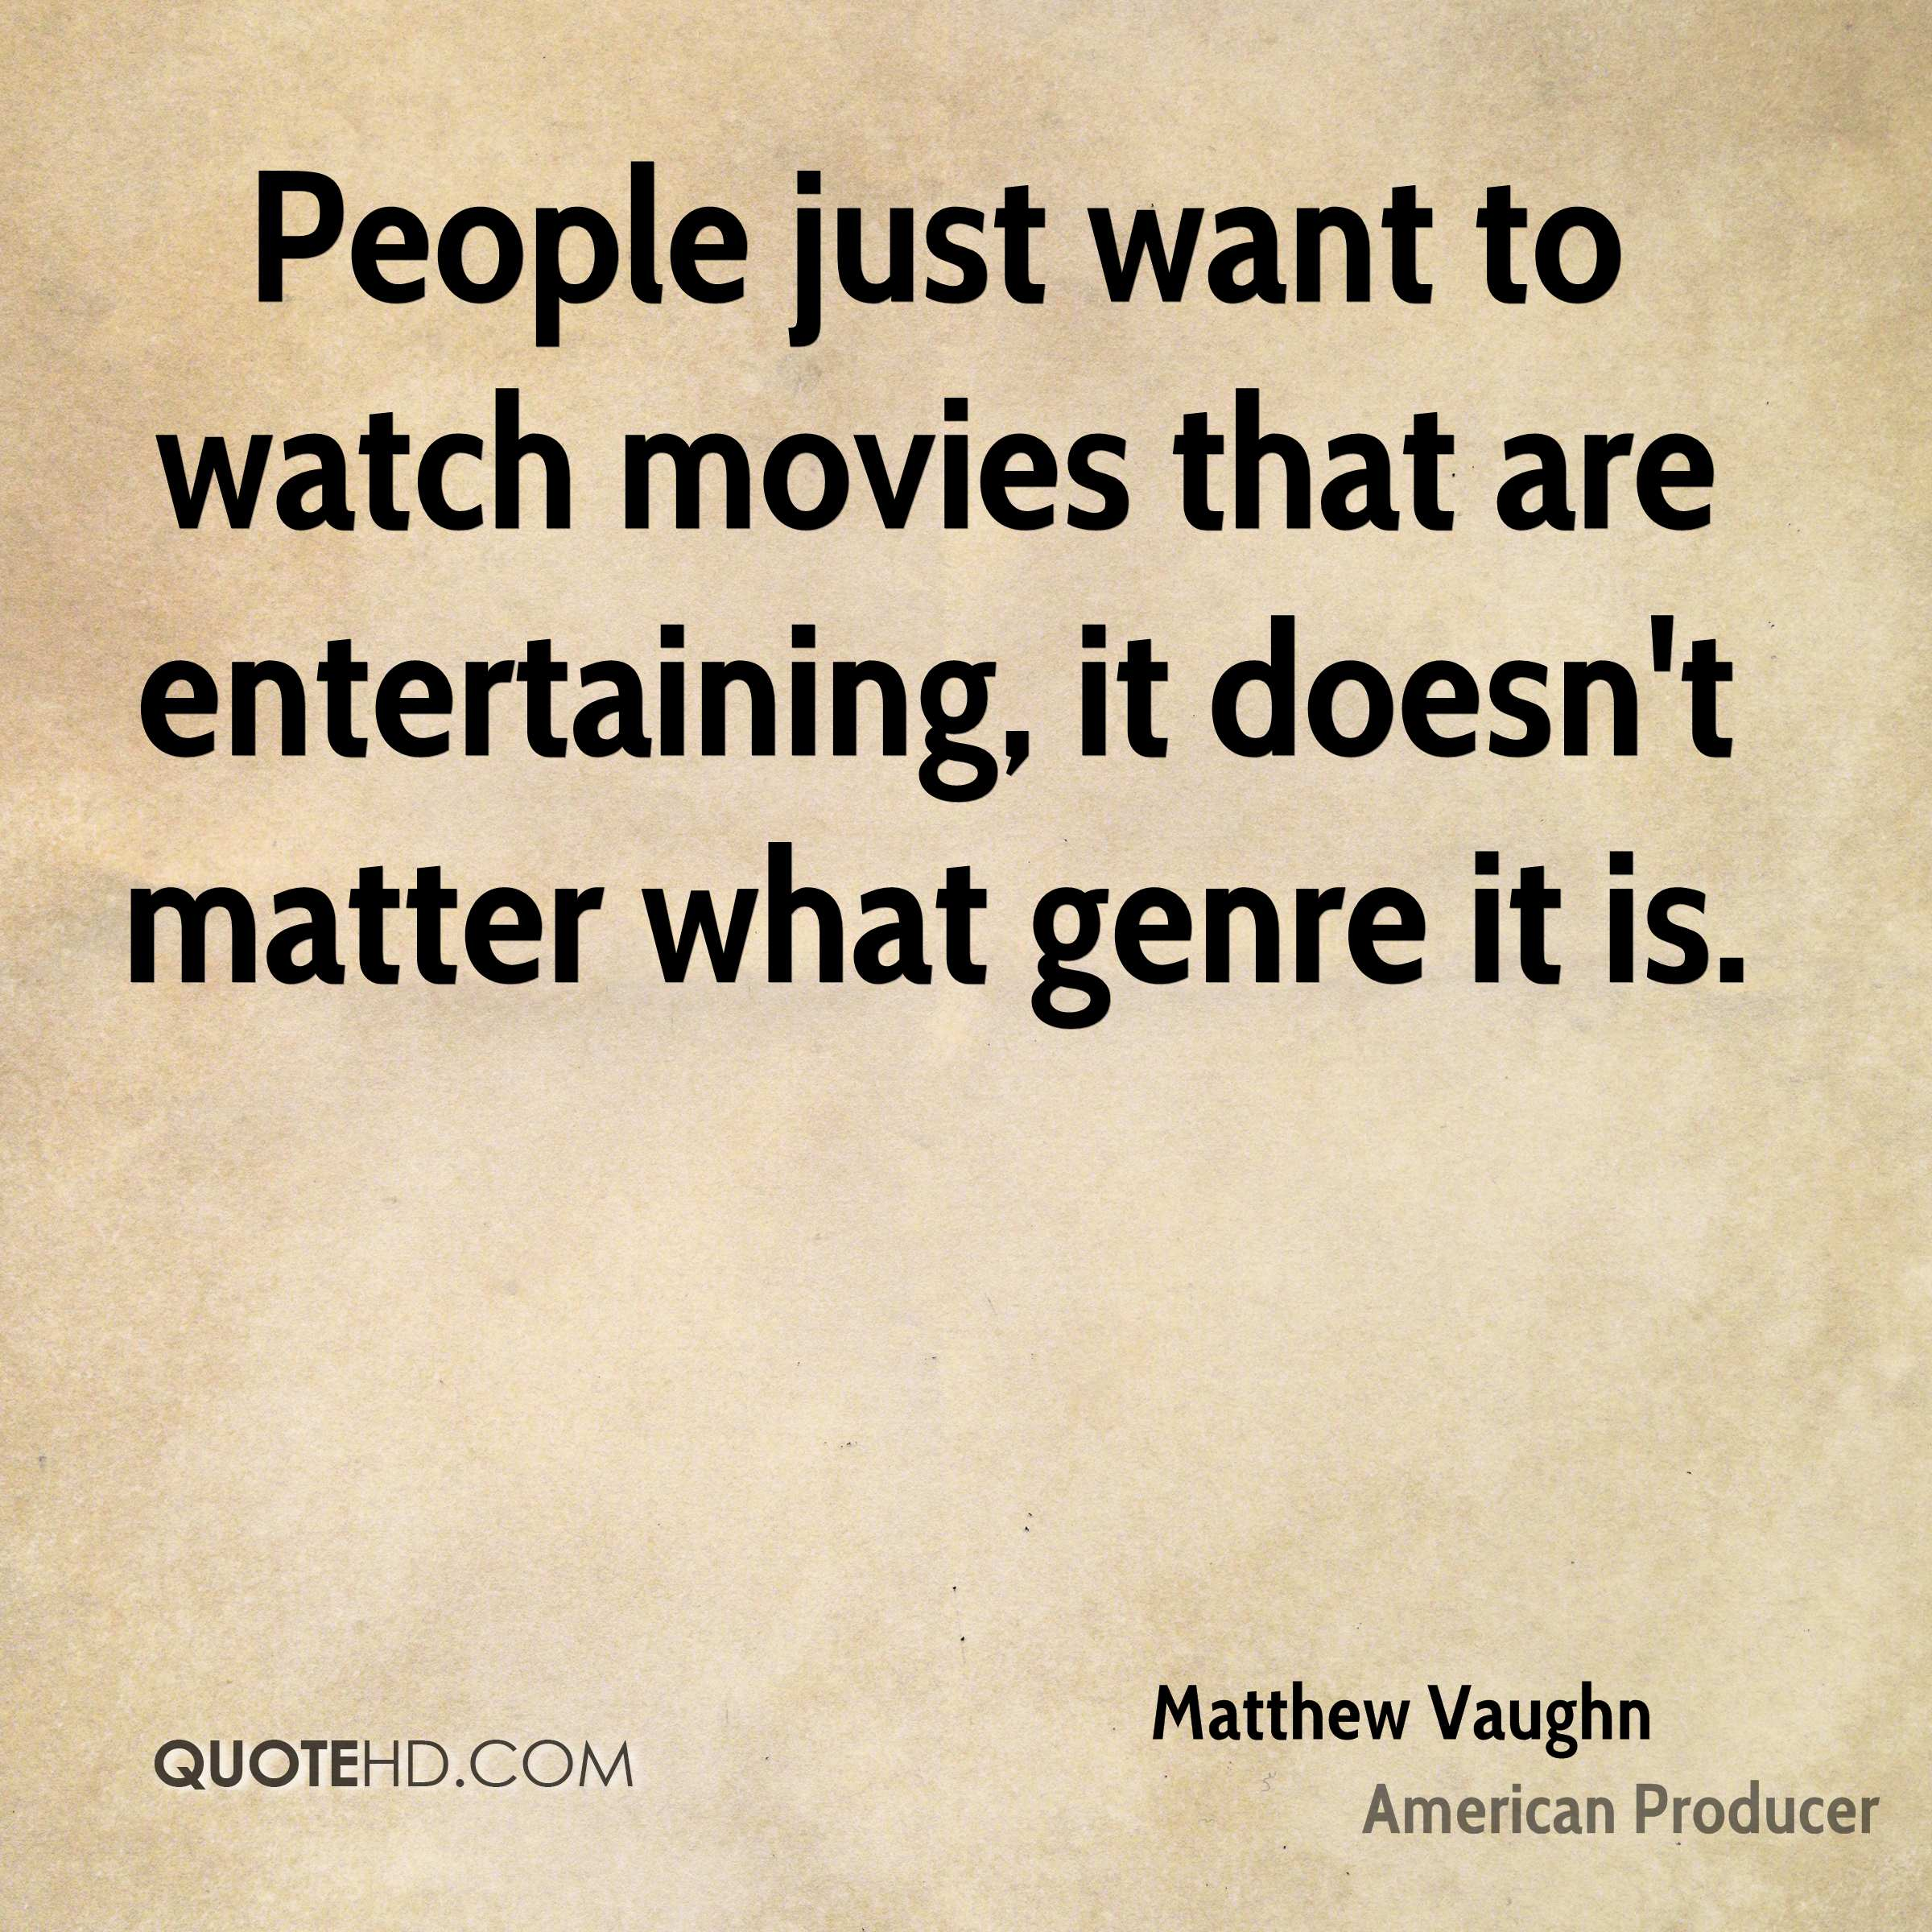 People just want to watch movies that are entertaining, it doesn't matter what genre it is.